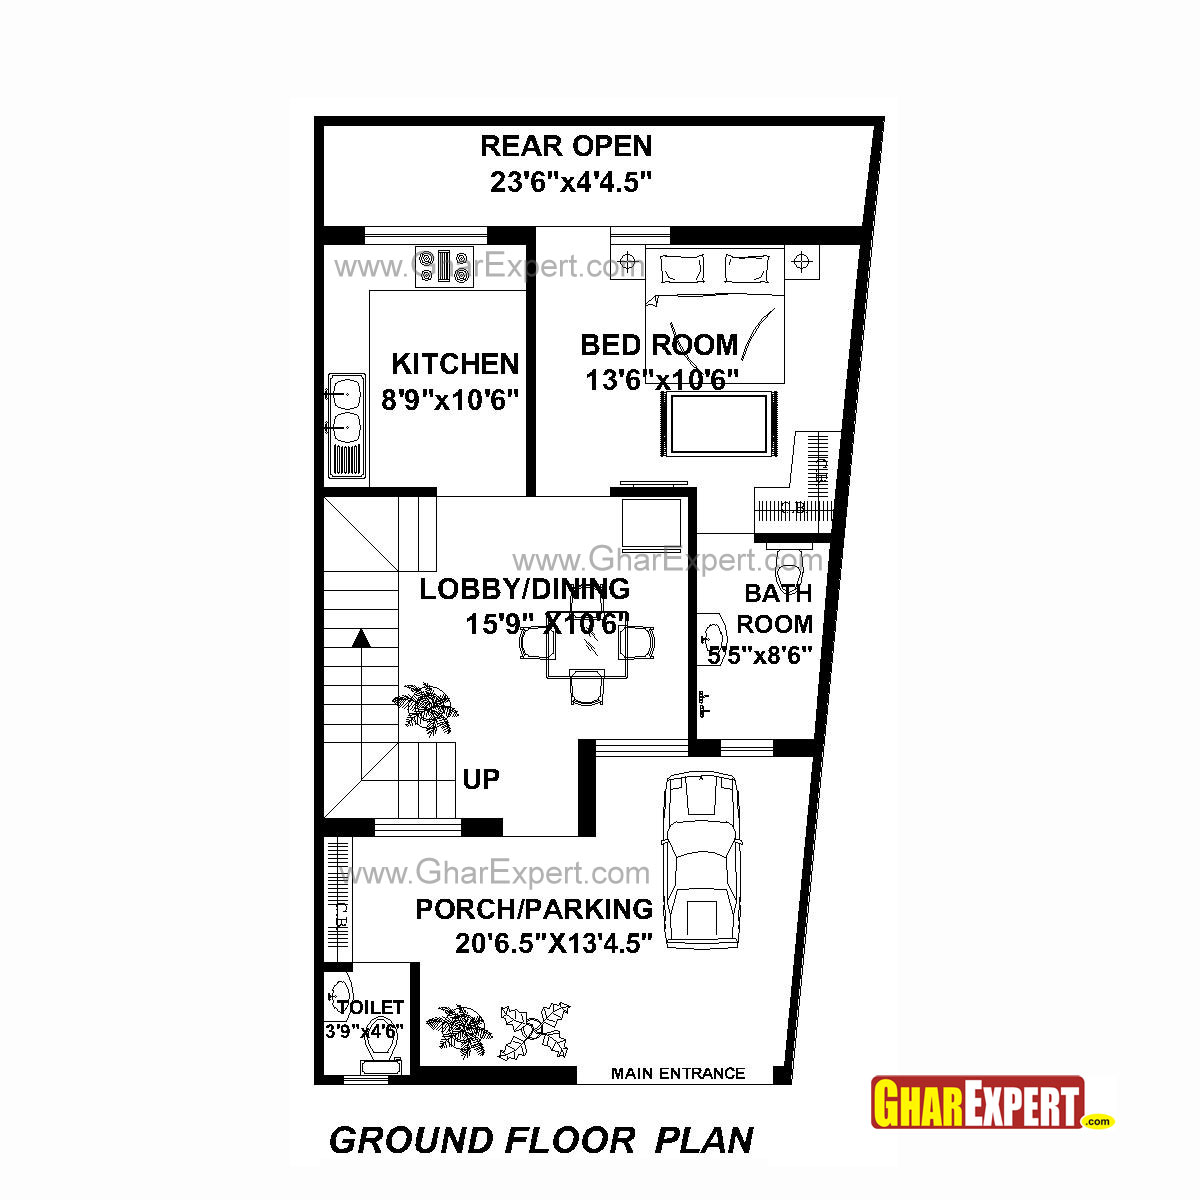 House plan for 22 feet by 42 feet plot plot size 103 square yards gharexpert com